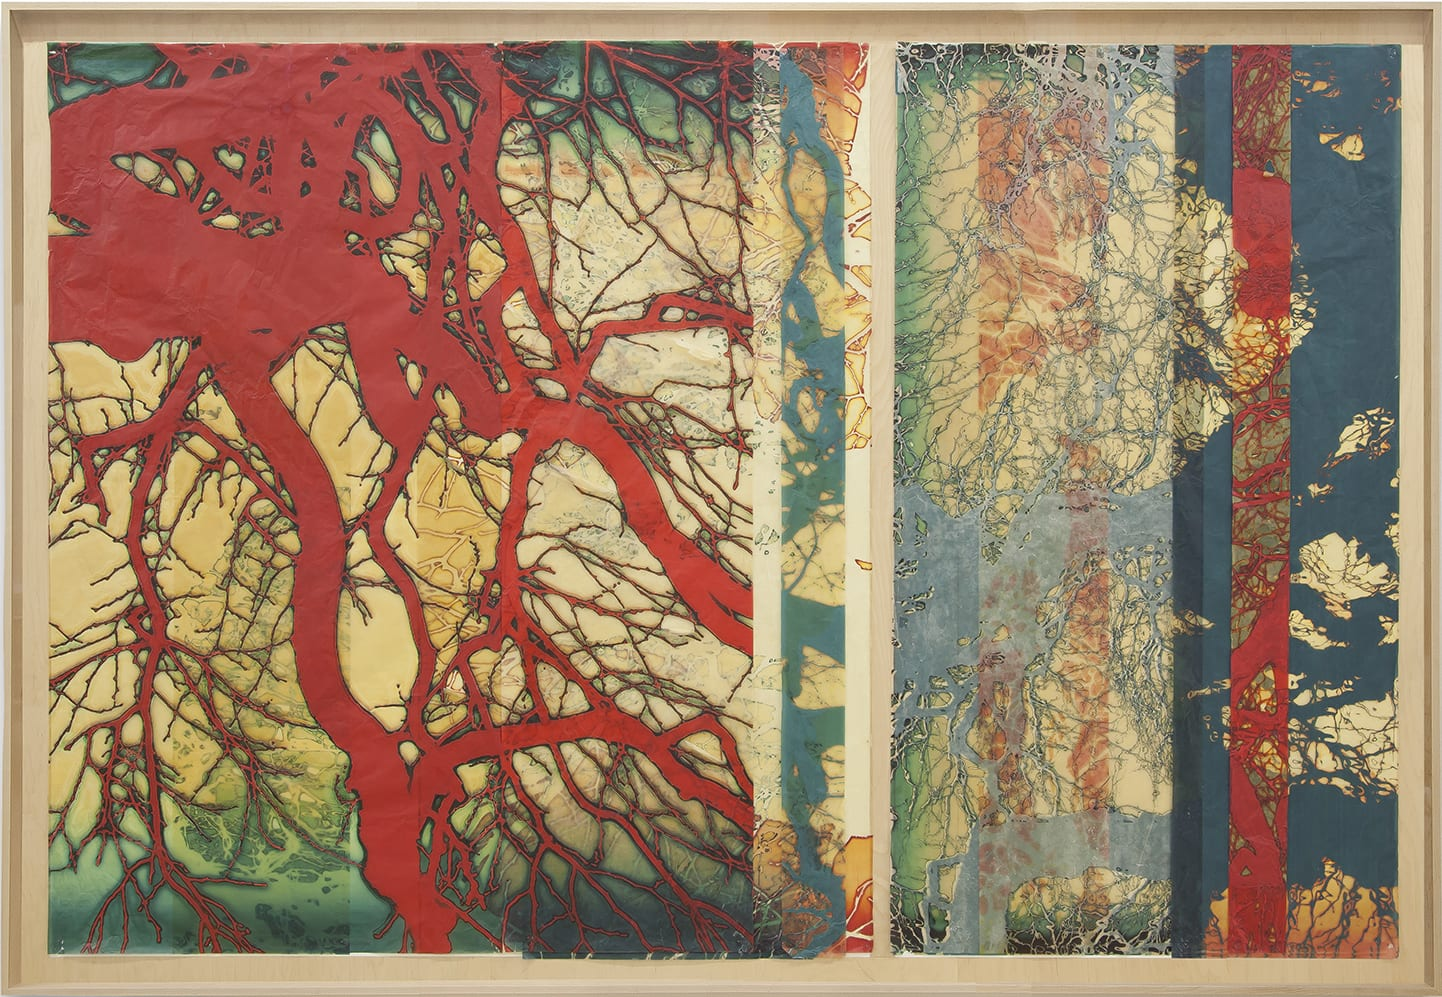 Doug and Mike Starn artwork - abstracted tree silhouettes layered in red blue and yellow